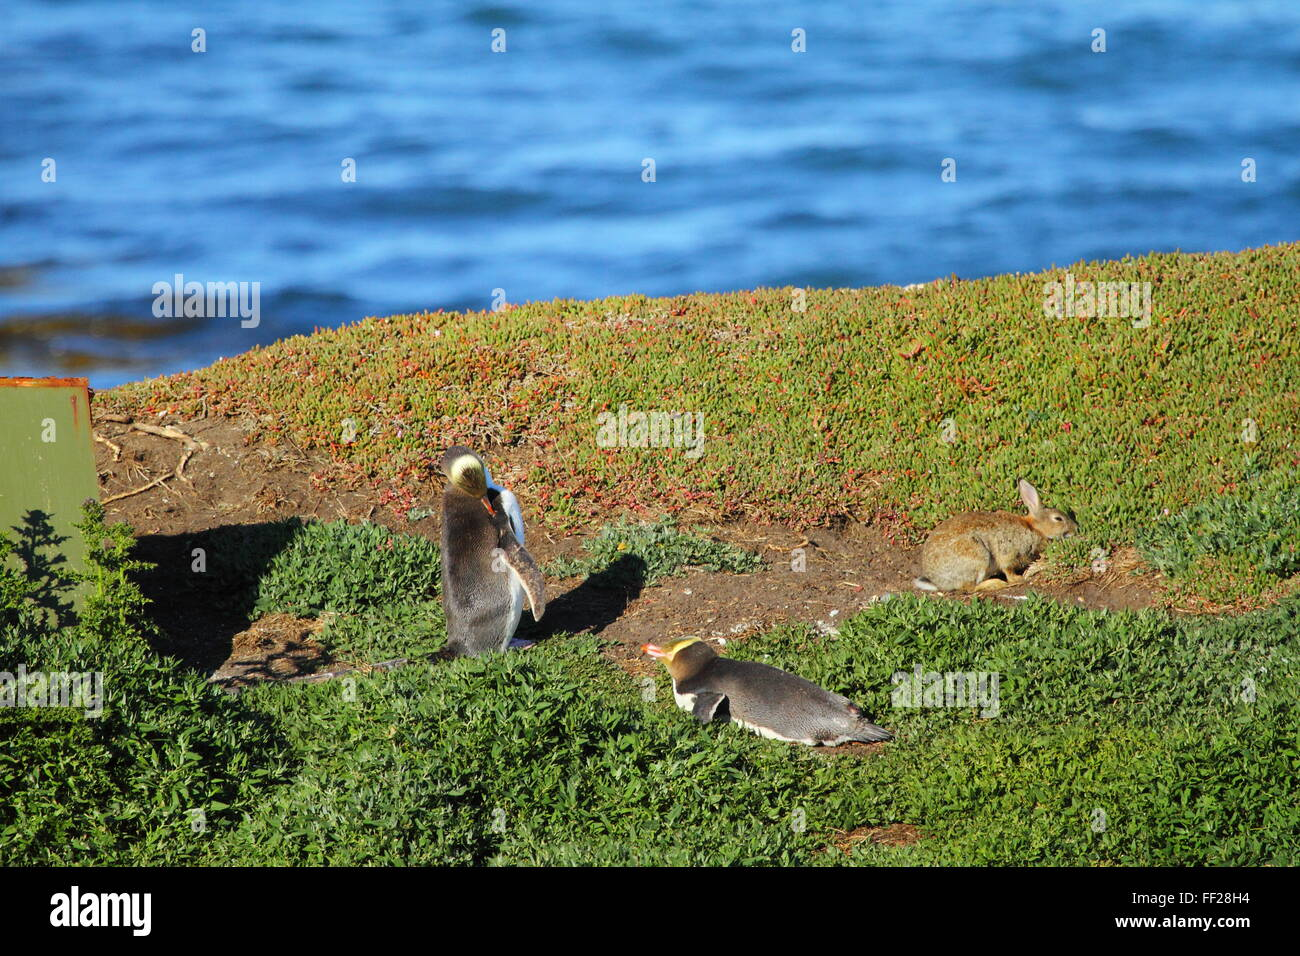 The endangered Yellow-eyed Penguin (Megadyptes antipodes) at Katiki Point Lighthouse (Moeraki Lighthouse), Moeraki, Stock Photo